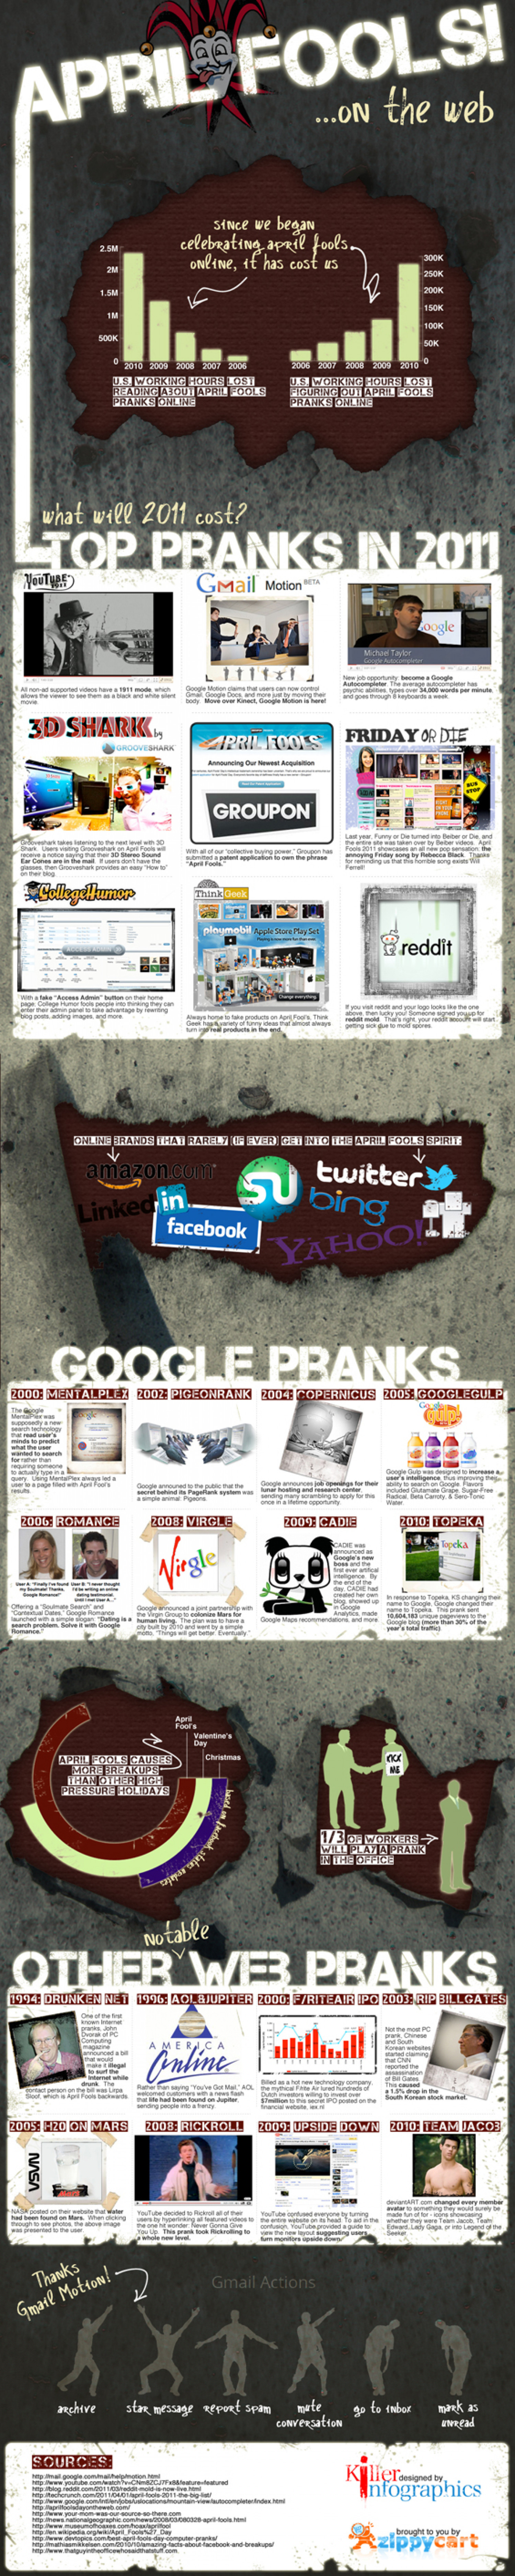 April Fools 2011: Pranks Around the World  Infographic